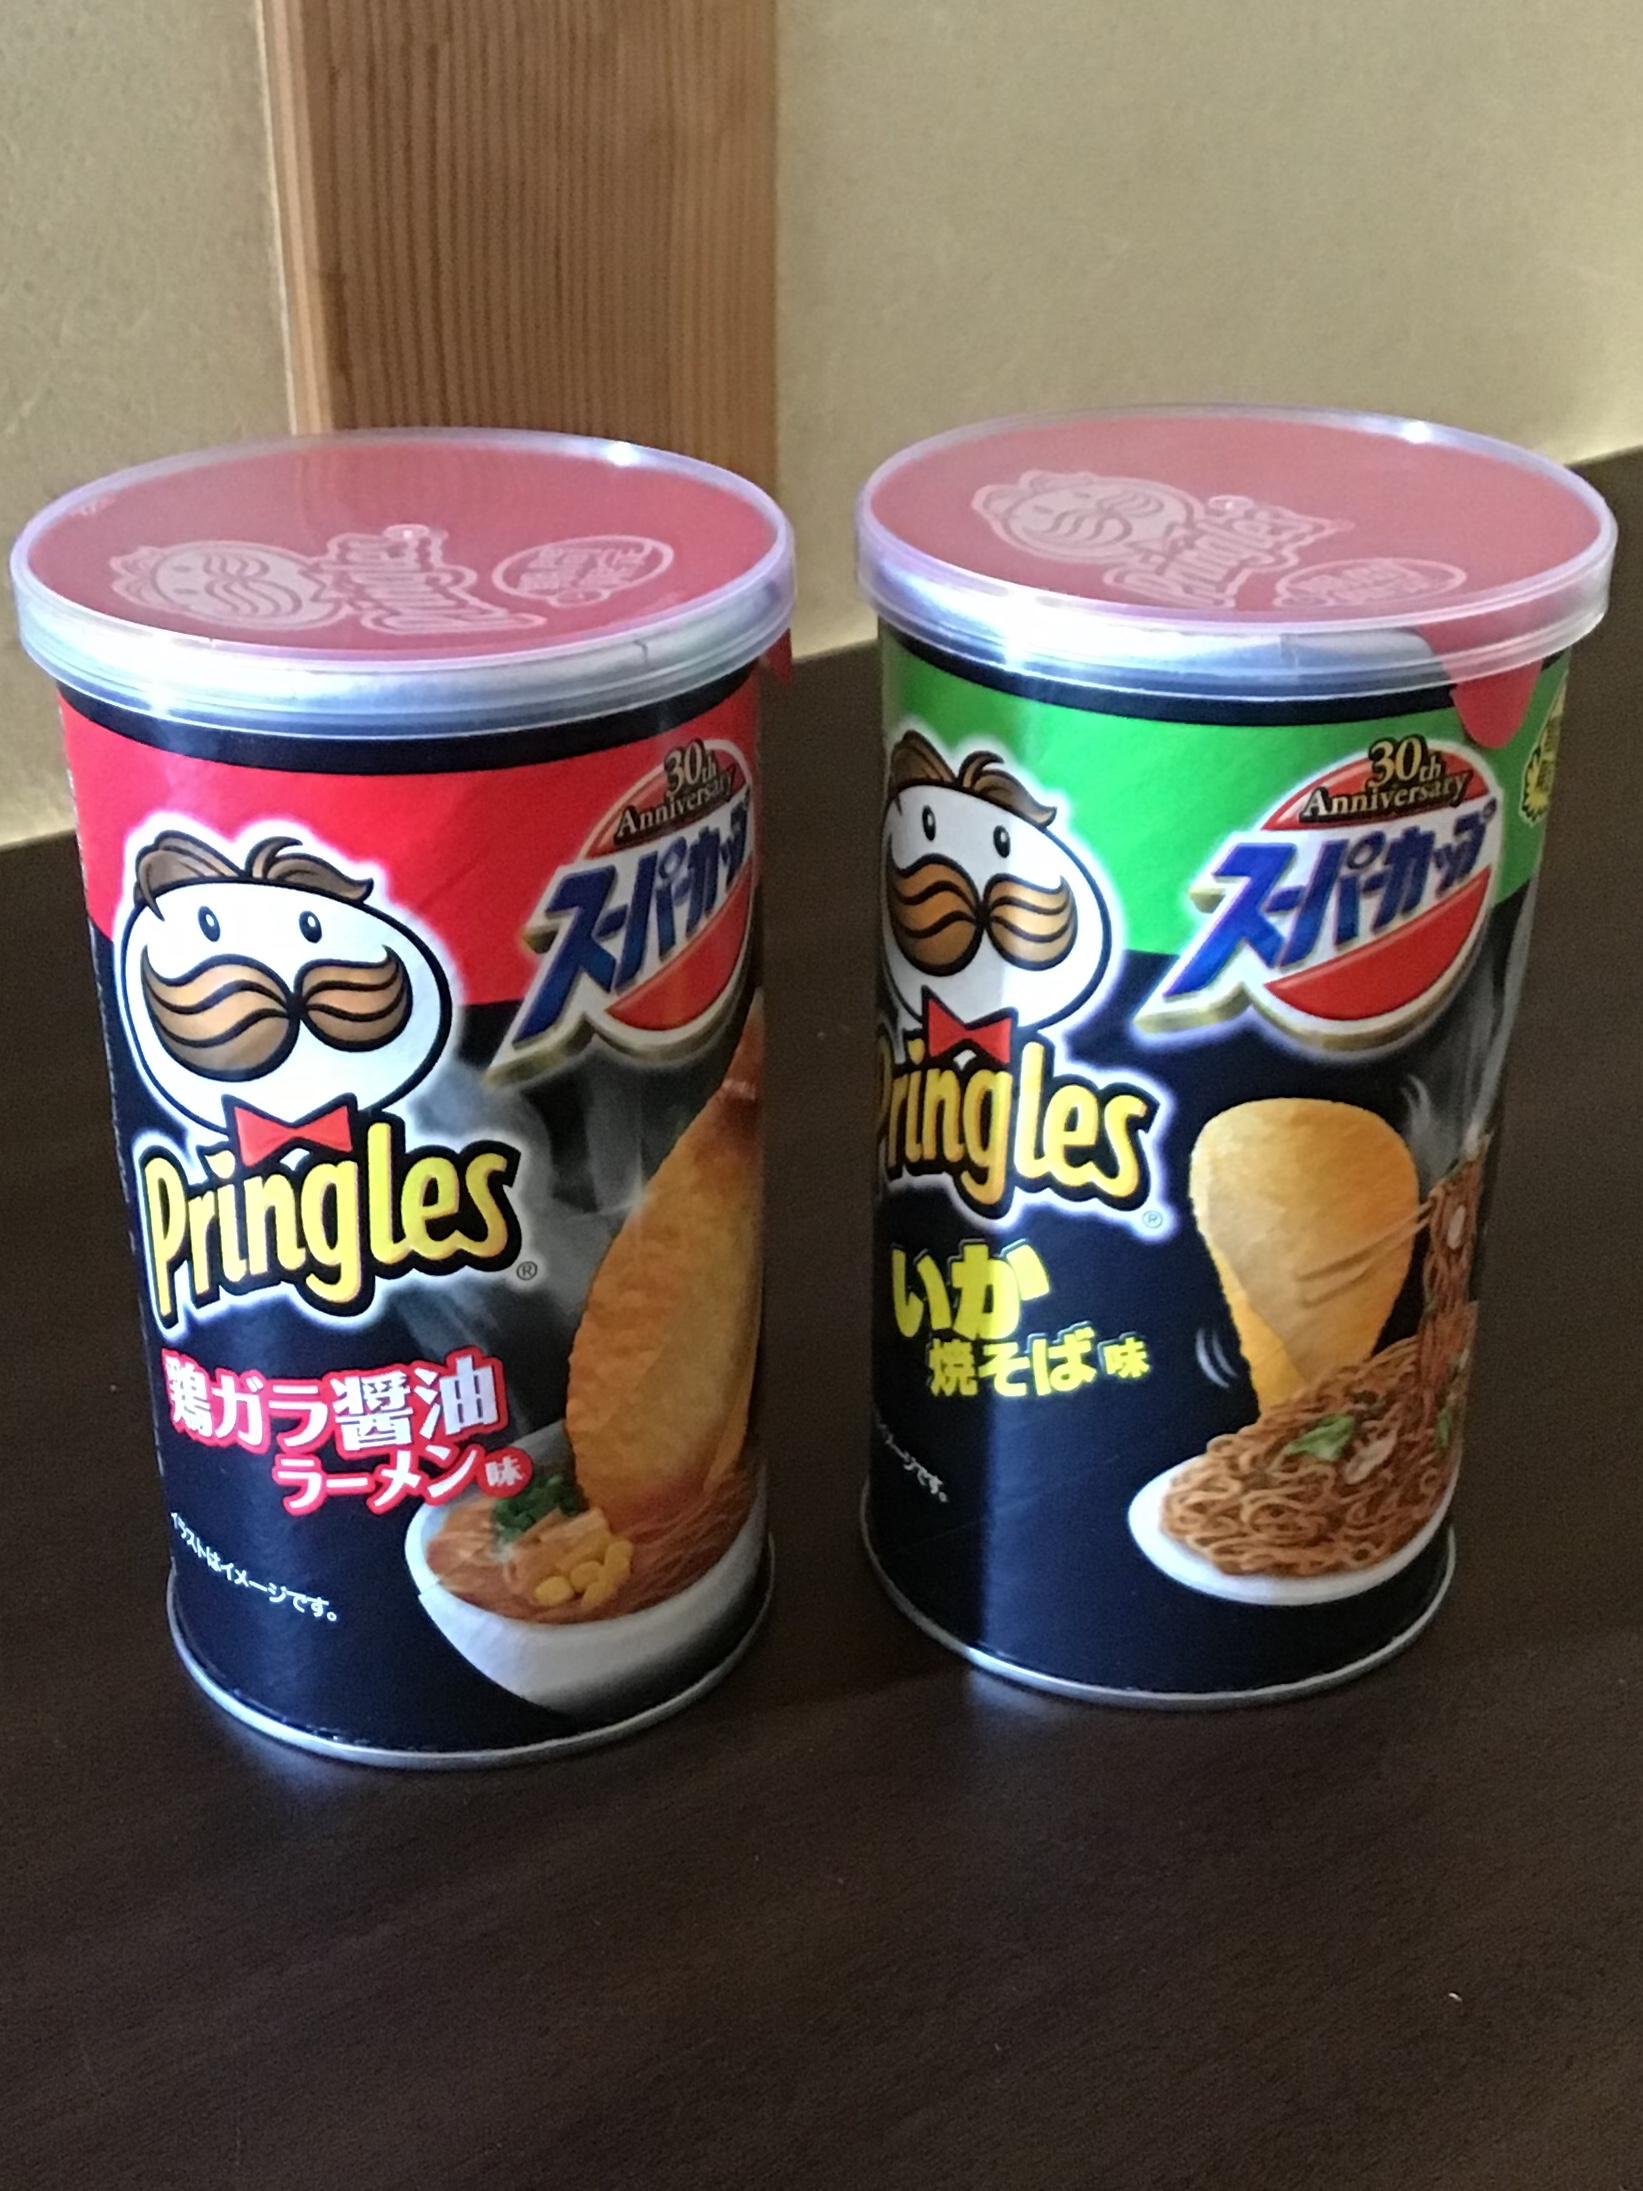 Pringles 30th anniversary limited edition chips